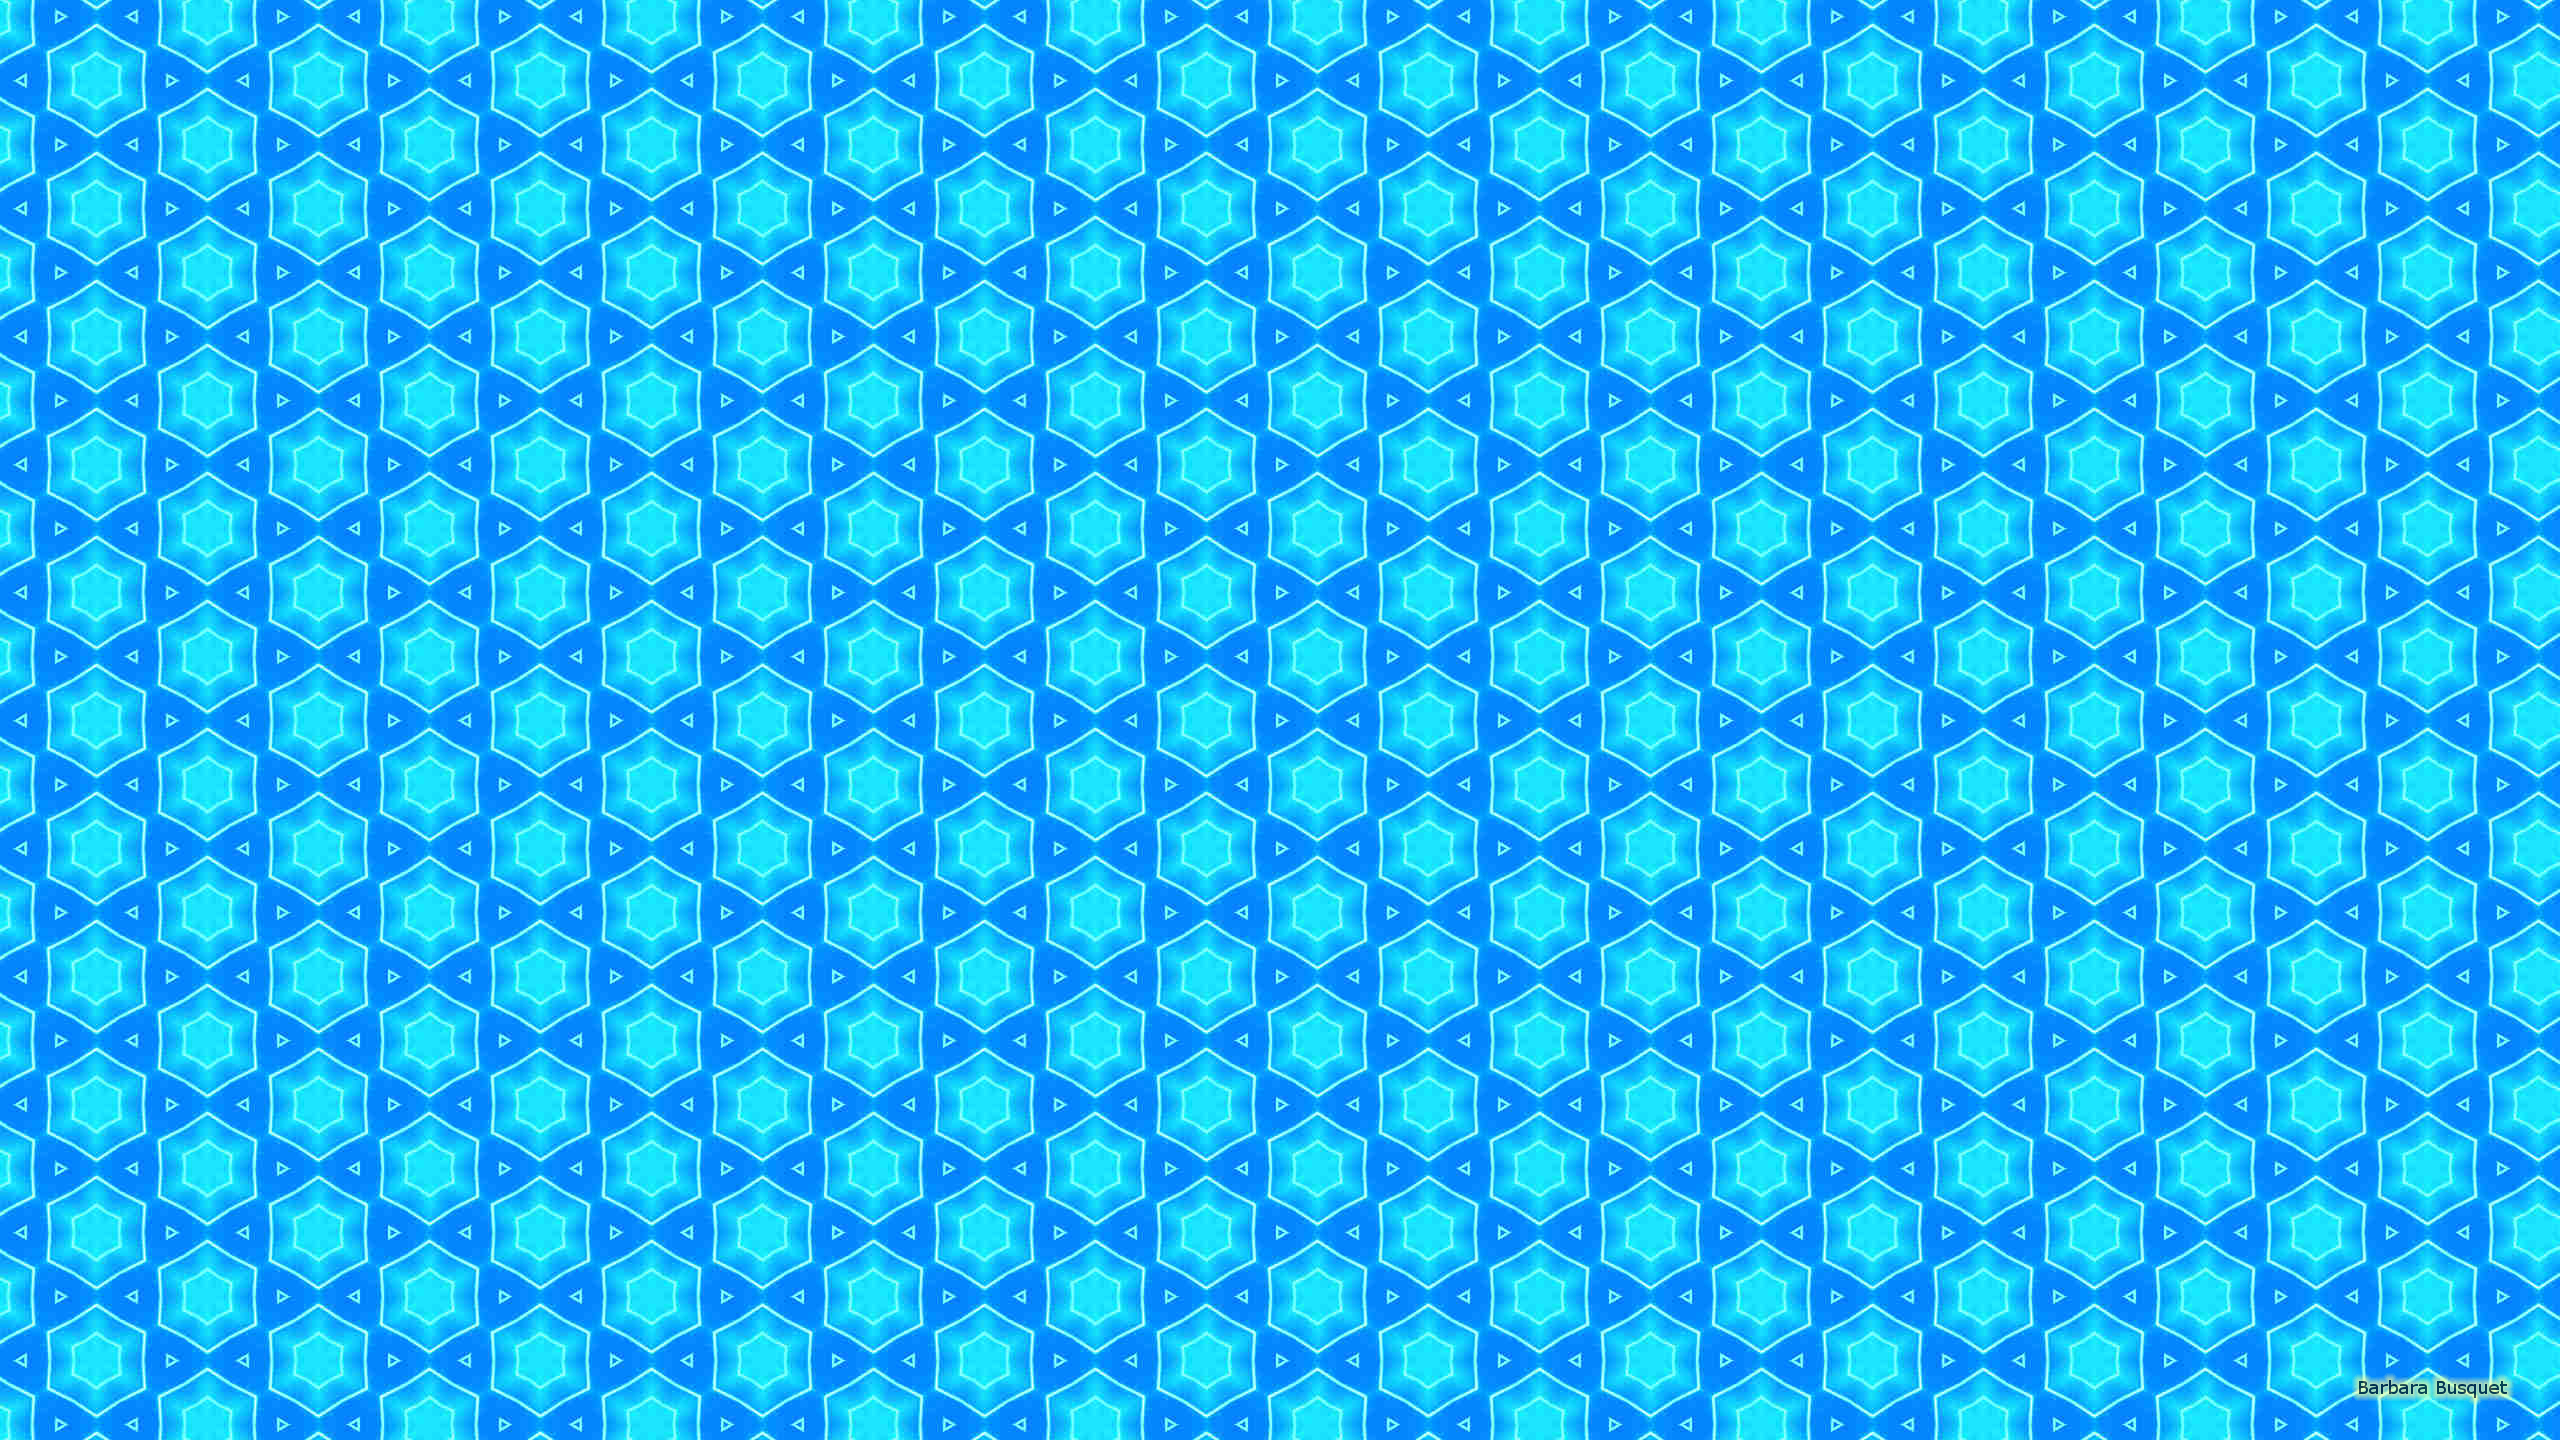 Blue pattern wallpaper - Paper Illusion Wallpaper PaperIllusion by